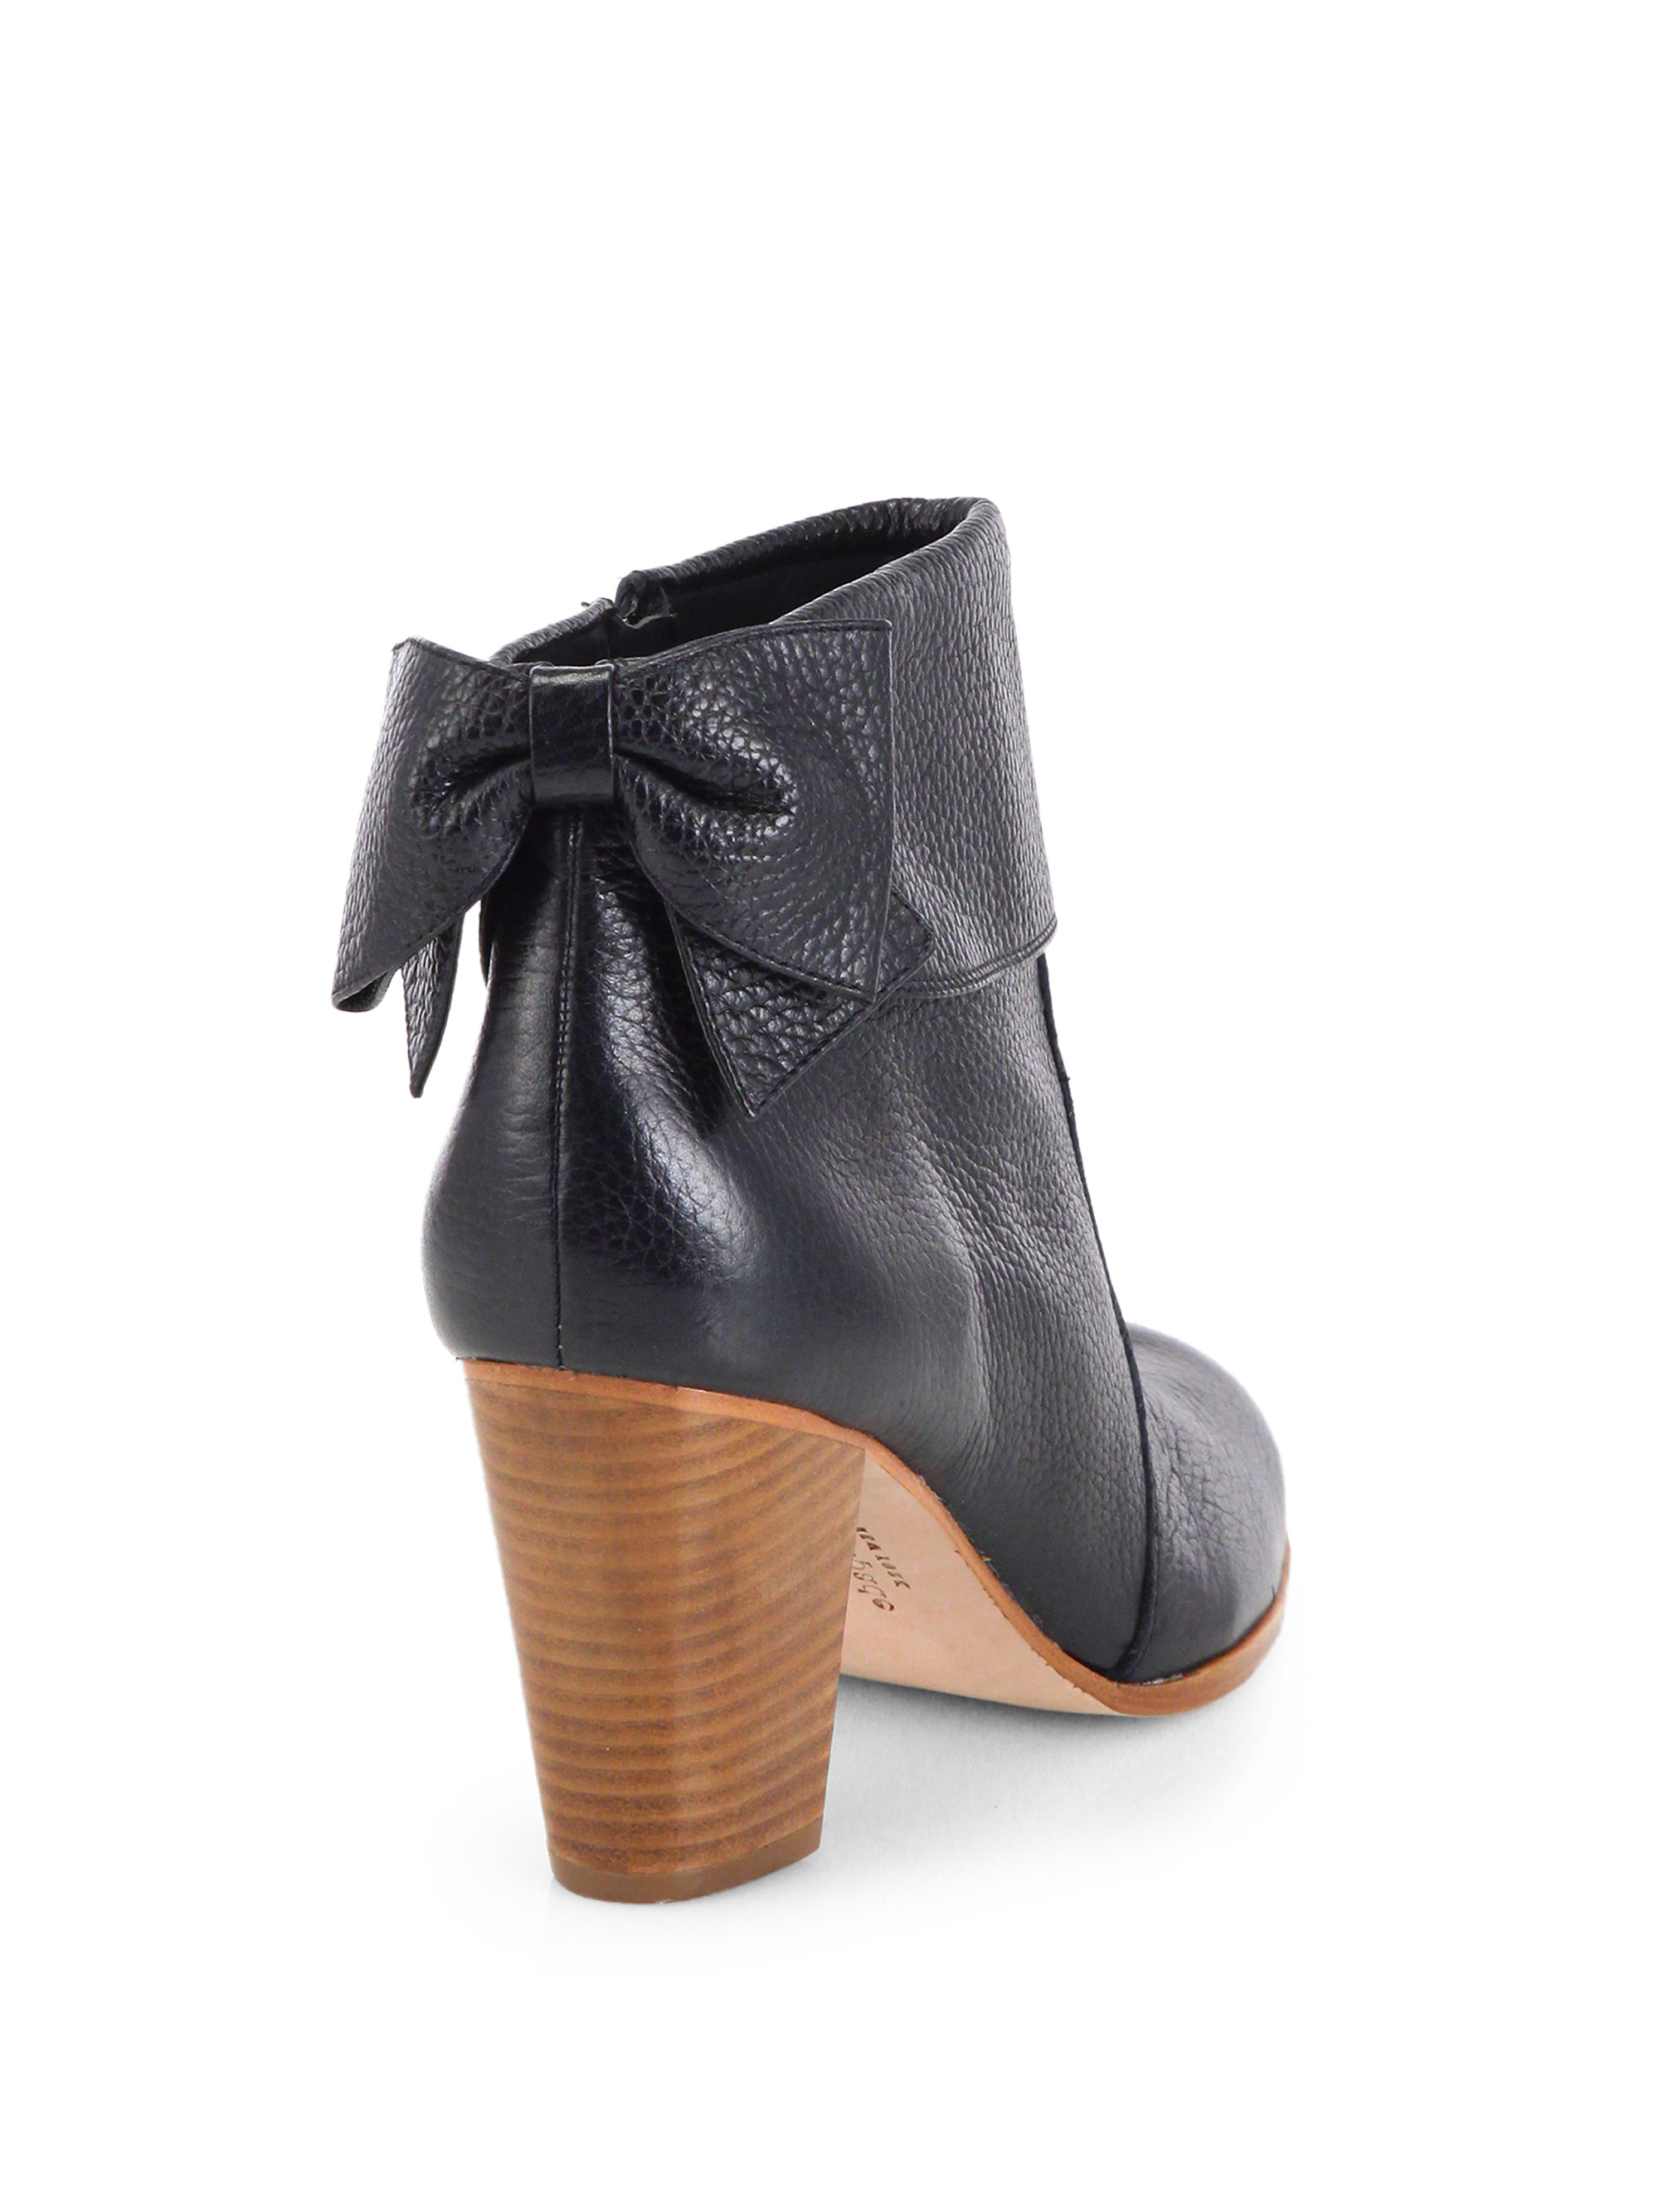 Kate spade new york Lanise Bow Leather Ankle Boots in Black | Lyst